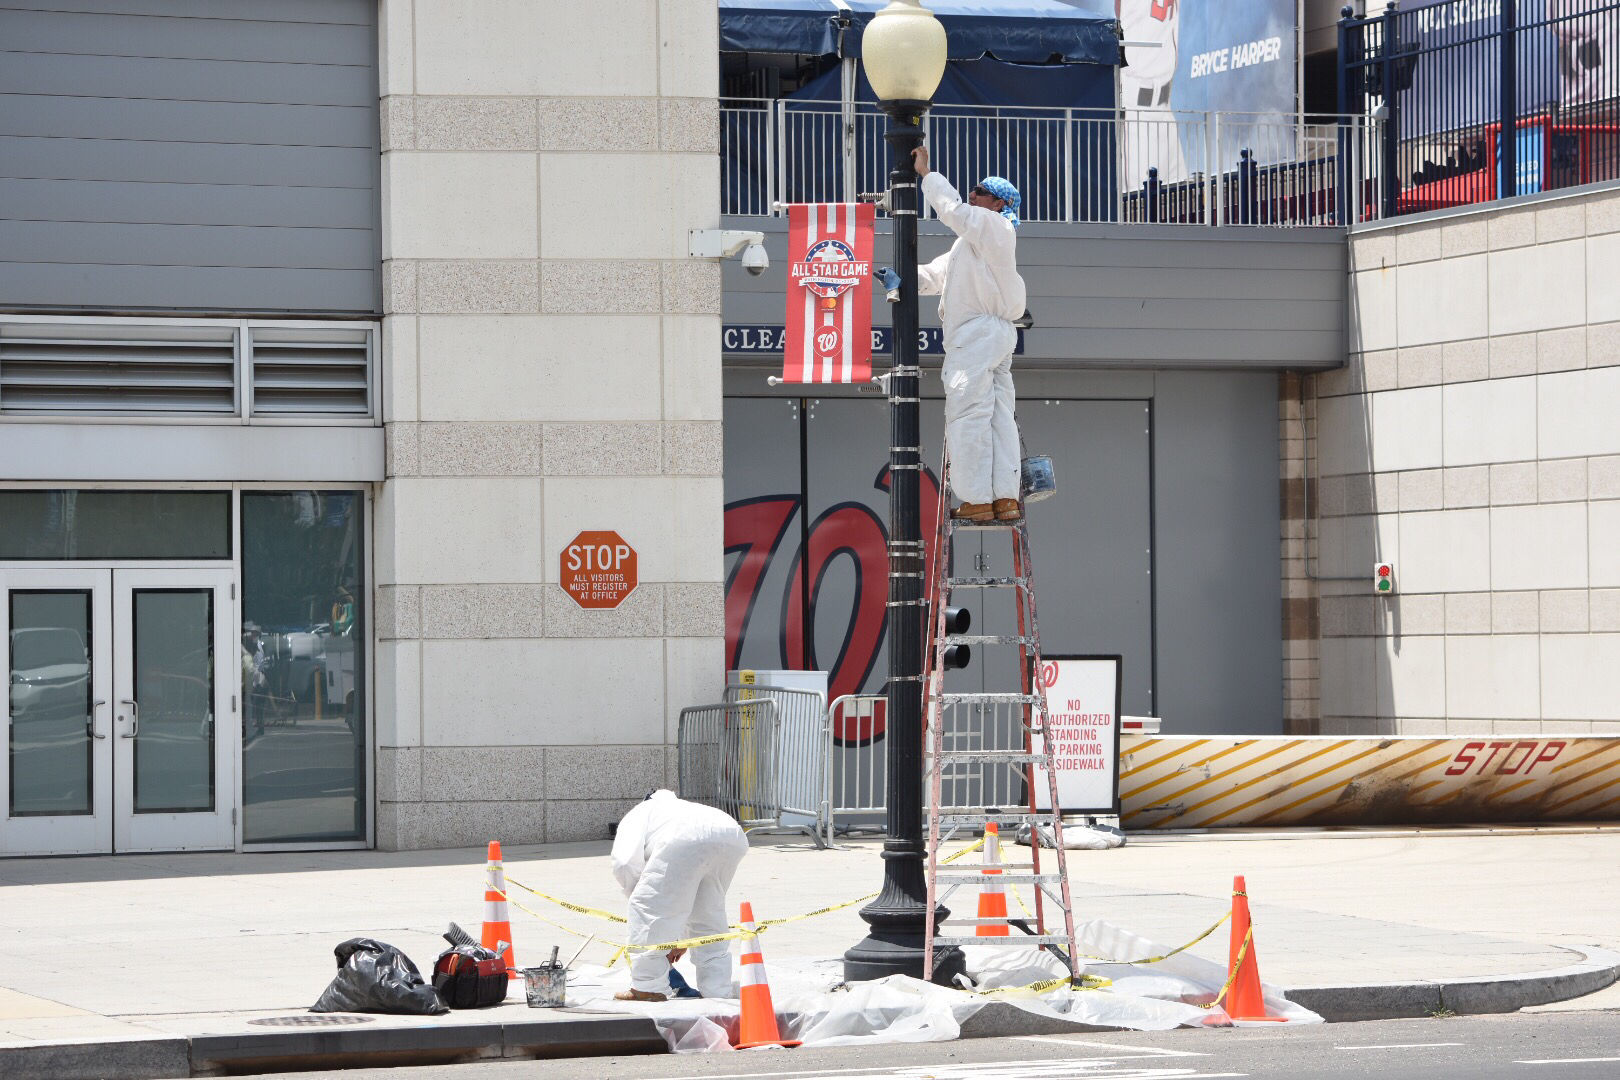 District Department of Transportation crews were seen Monday touching up the lamp posts outside Nationals Park. (WTOP/Dave Dildine)